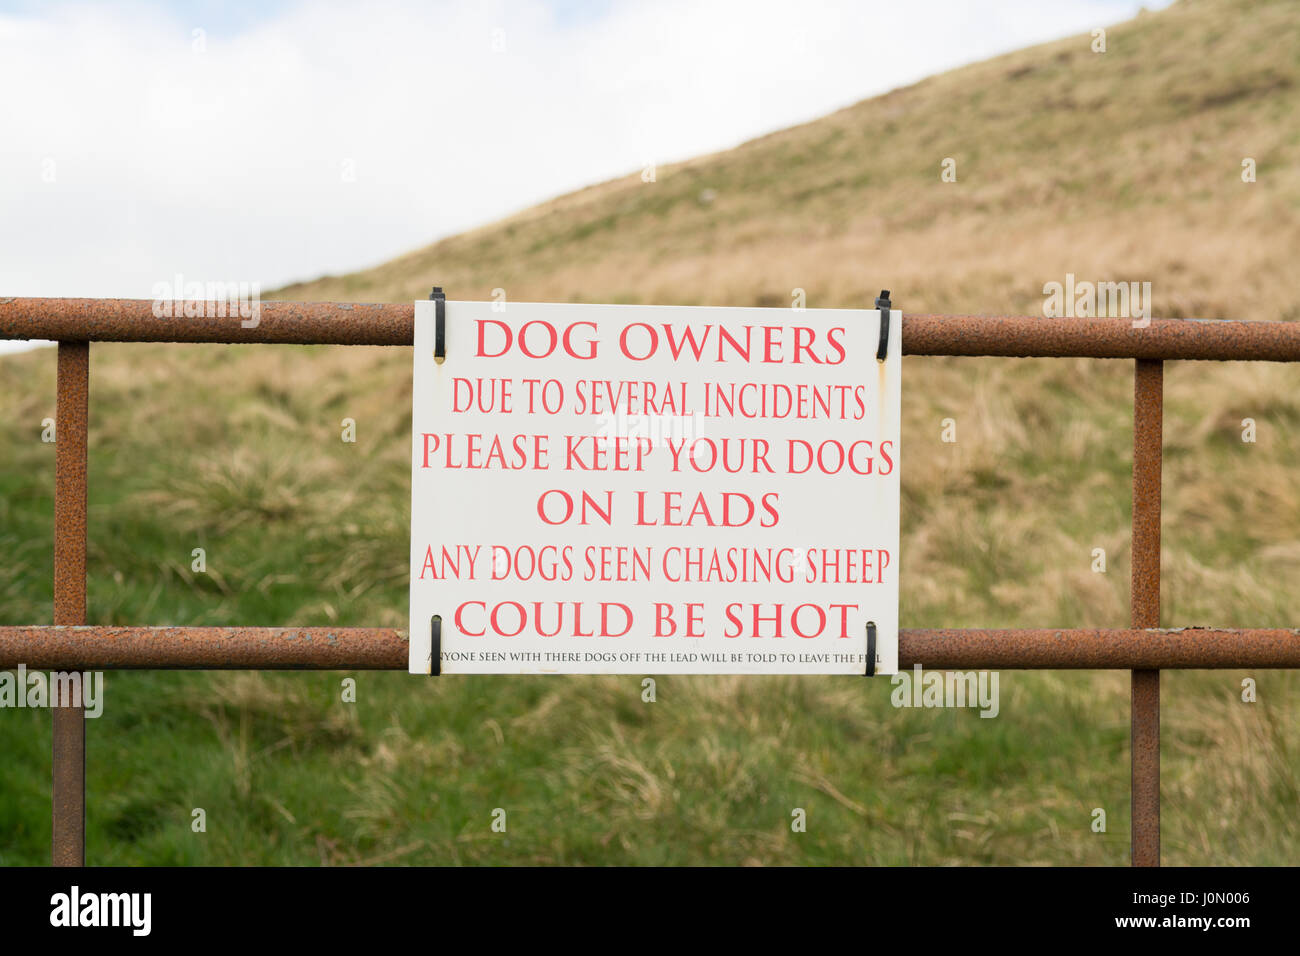 Dogs not on leads chasing sheep warning sign there their misspelling - Stock Image